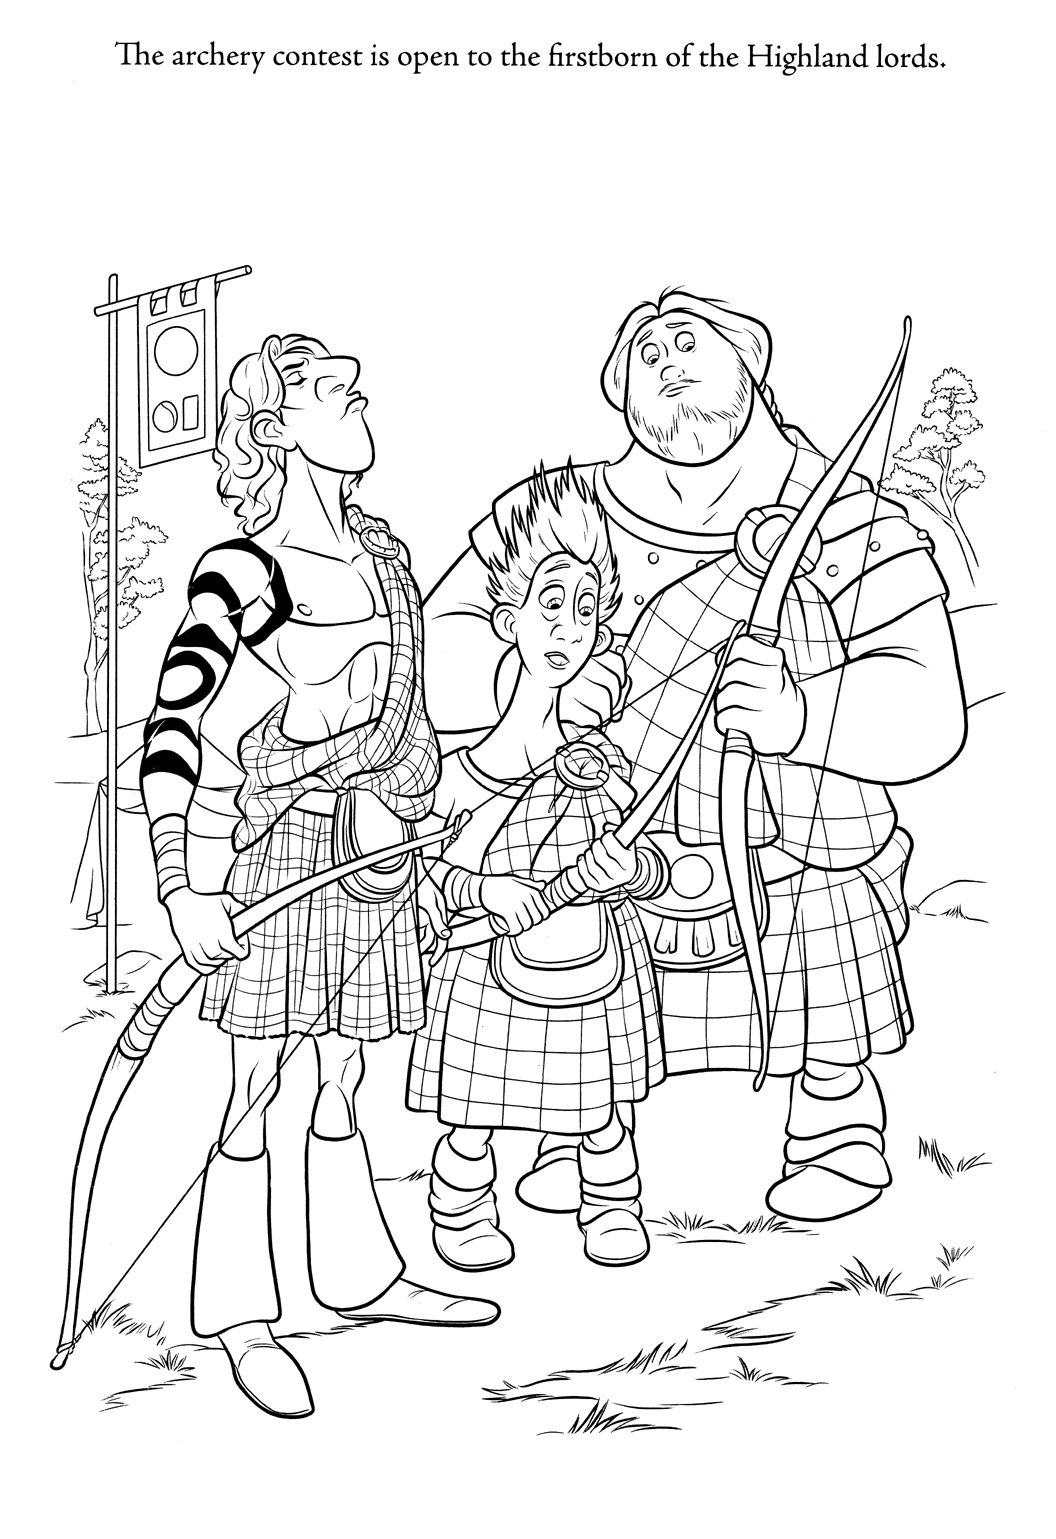 photos to coloring pages - photo#19